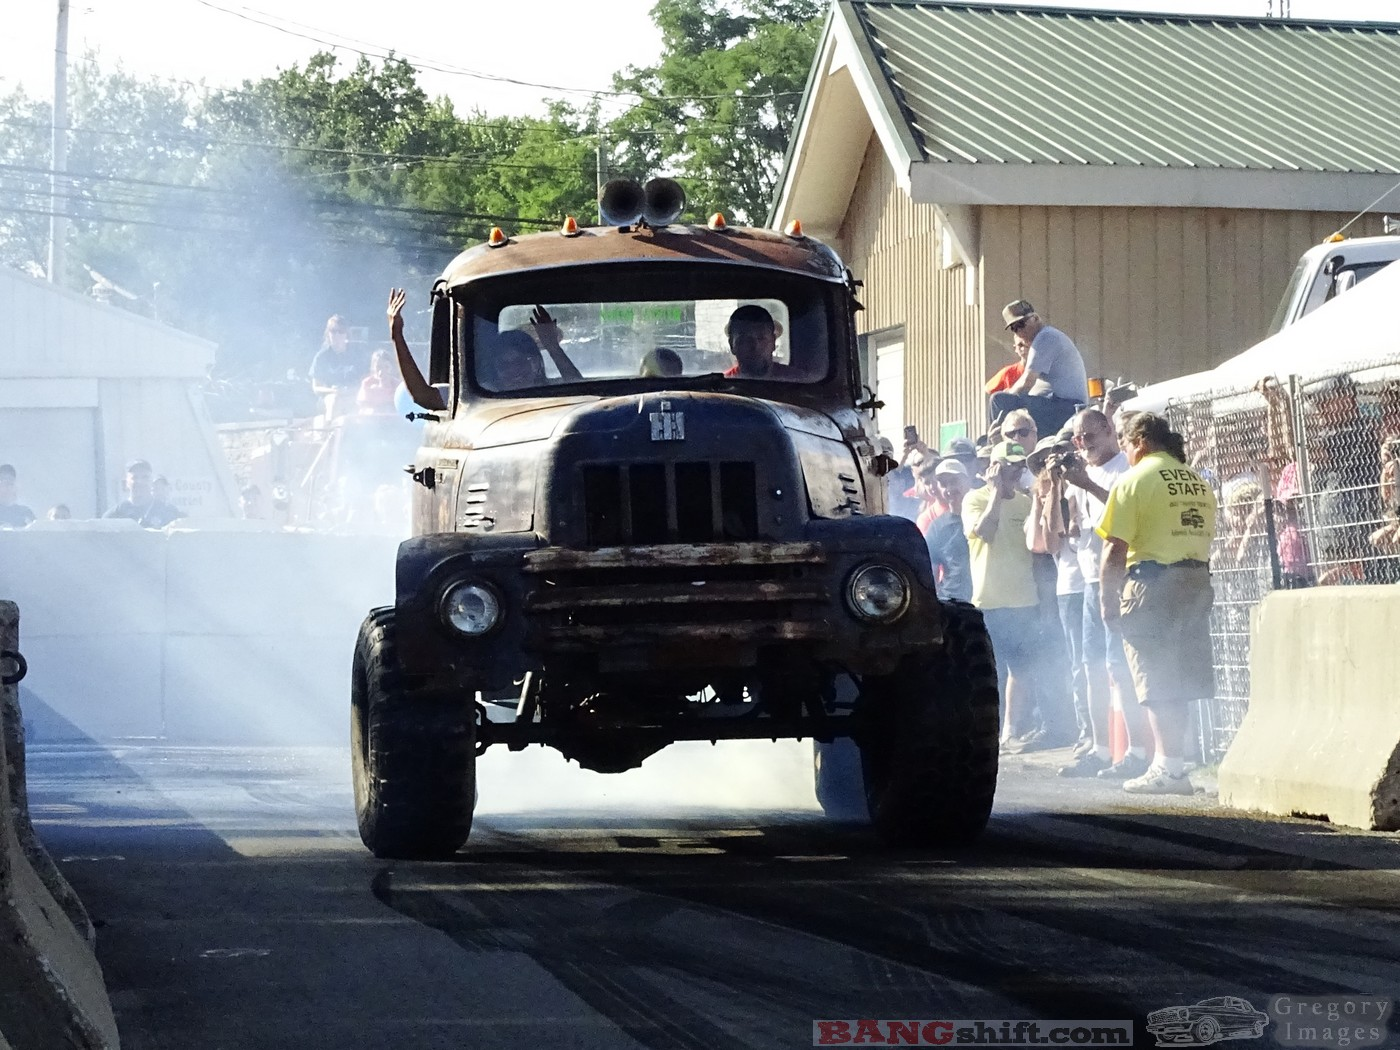 Cynthiana Rod Ron Burnout Contest Photos: Smoking The Tires At The Awesome Cruise Event